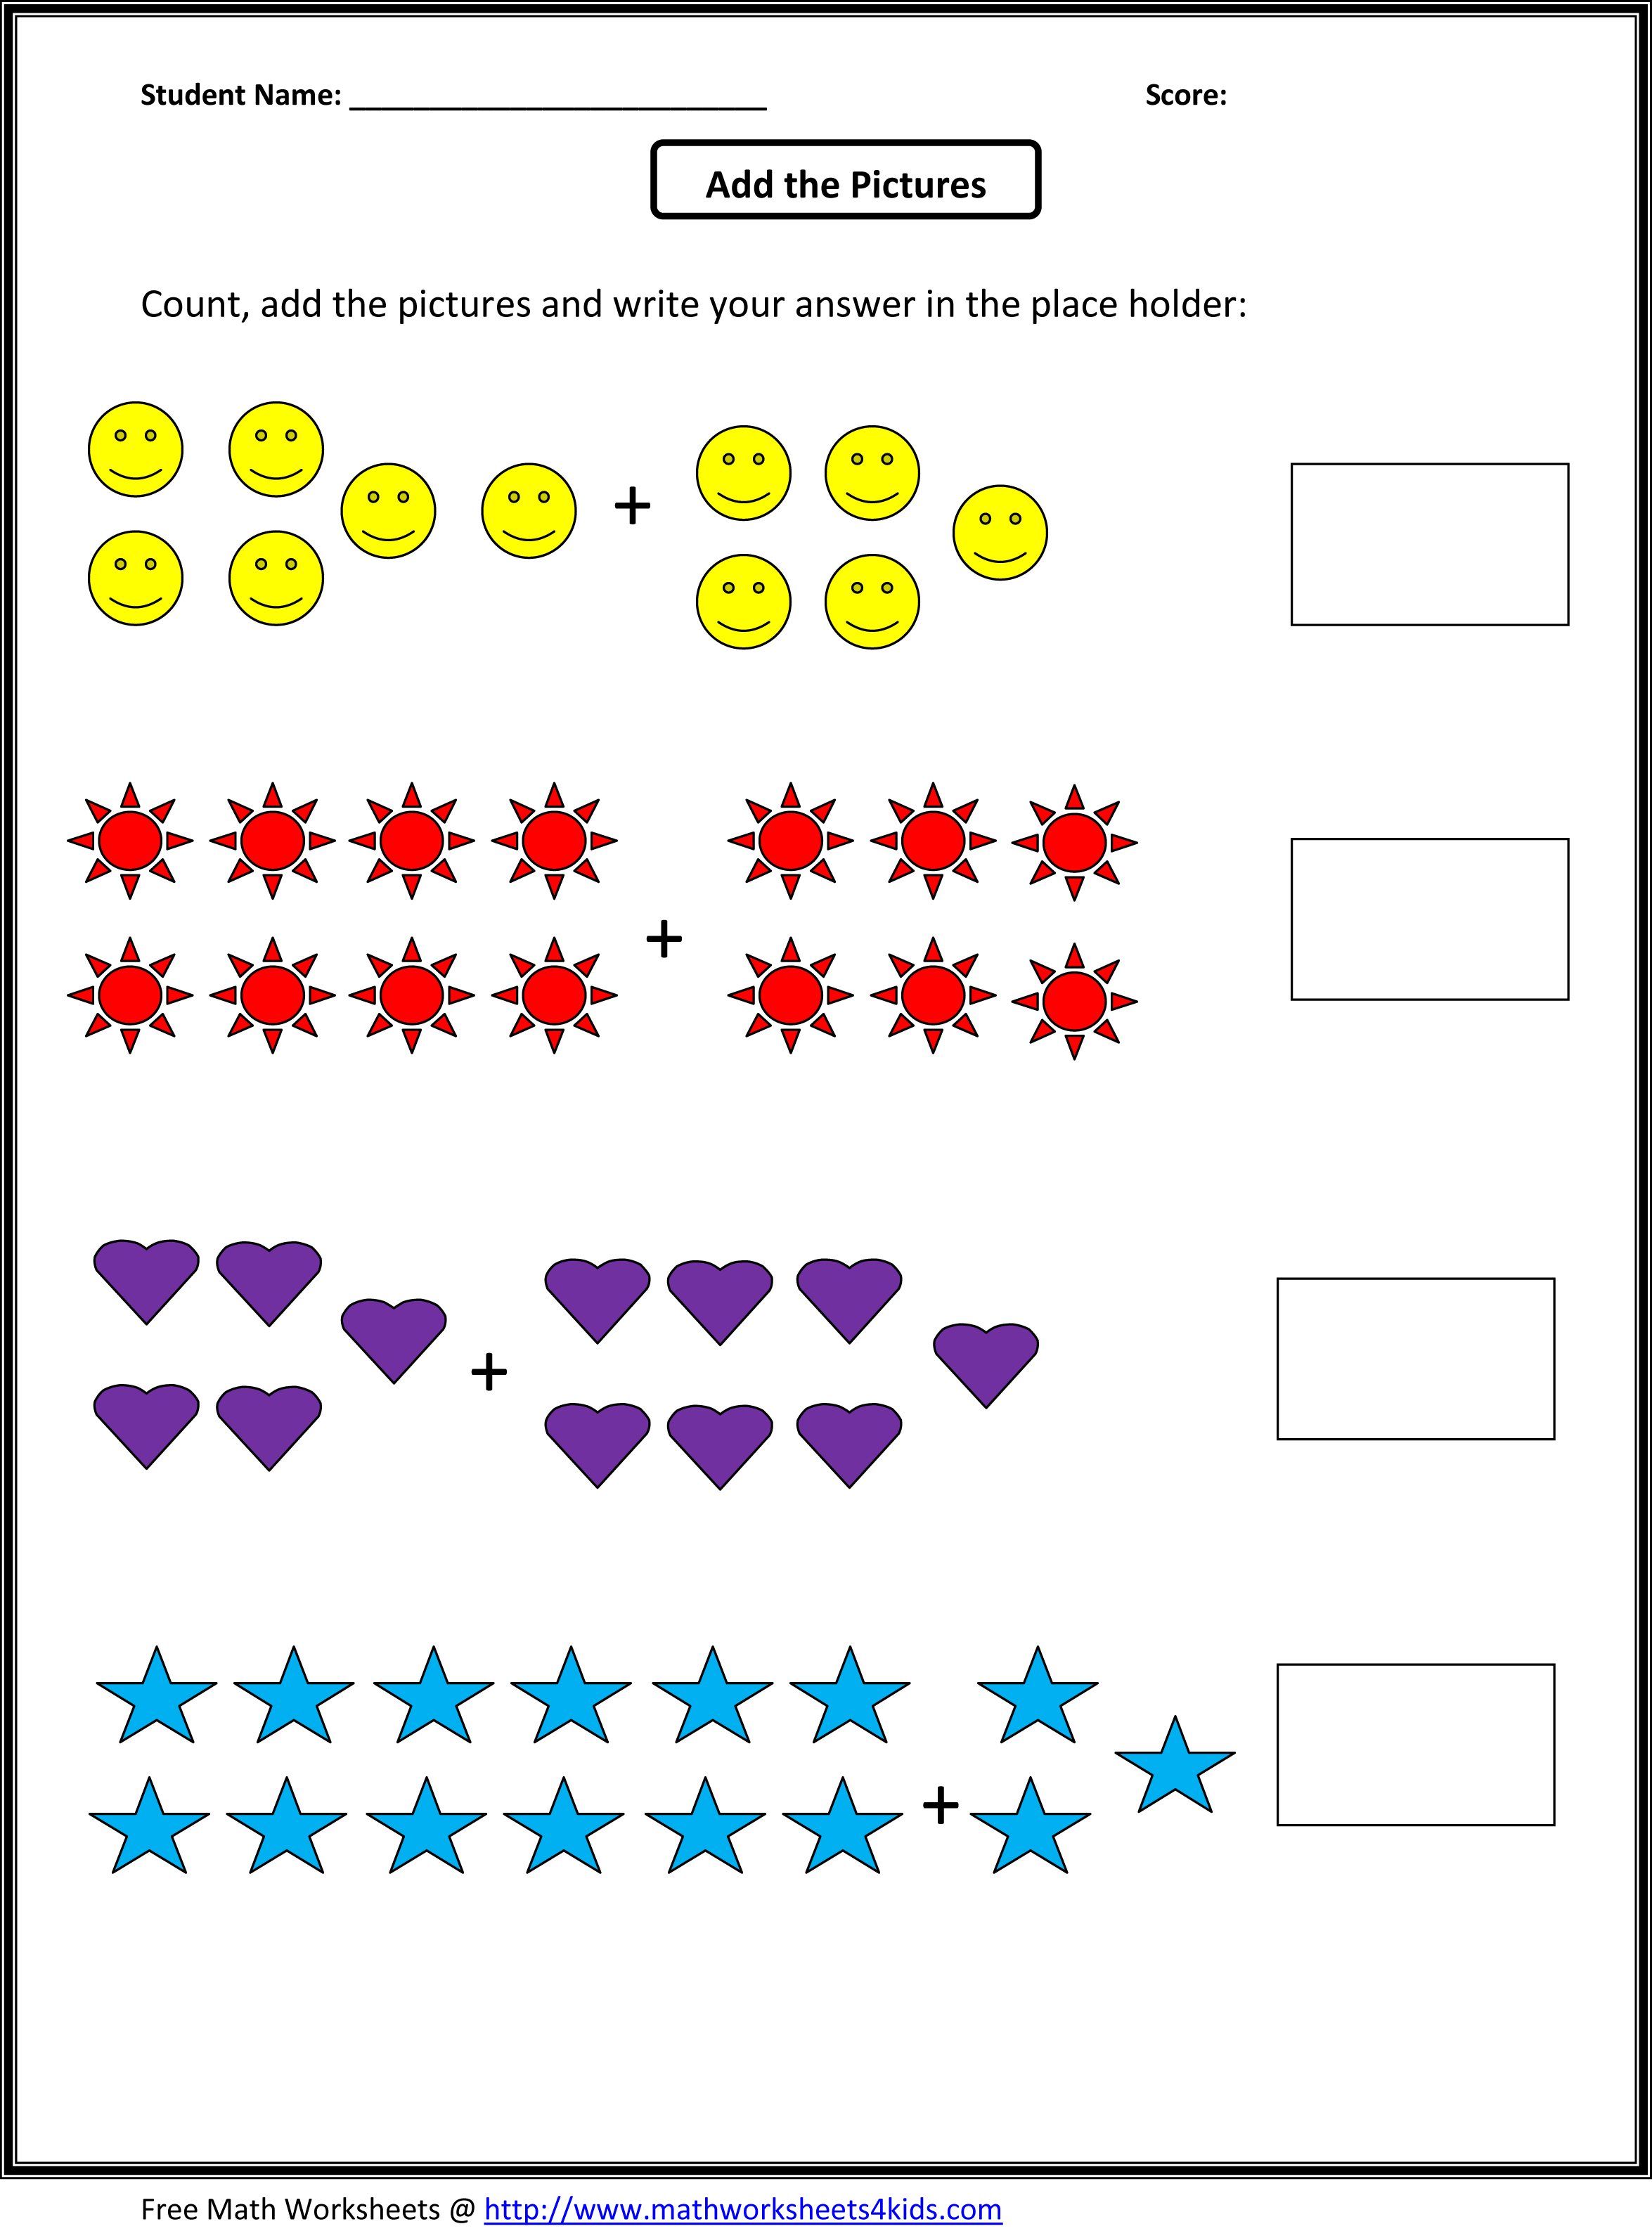 Weirdmailus  Seductive Grade  Maths Worksheet  Reocurent With Likable Math Worksheets For St Grade Free  Reocurent With Enchanting Context Clues Worksheet Nd Grade Also Maricopa County Child Support Worksheet In Addition Translation Dilation Rotation And Reflection Worksheet And Similie Worksheets As Well As Addition Worksheets For Kindergarten Free Additionally Free Toddler Worksheets From Reocurentcom With Weirdmailus  Likable Grade  Maths Worksheet  Reocurent With Enchanting Math Worksheets For St Grade Free  Reocurent And Seductive Context Clues Worksheet Nd Grade Also Maricopa County Child Support Worksheet In Addition Translation Dilation Rotation And Reflection Worksheet From Reocurentcom